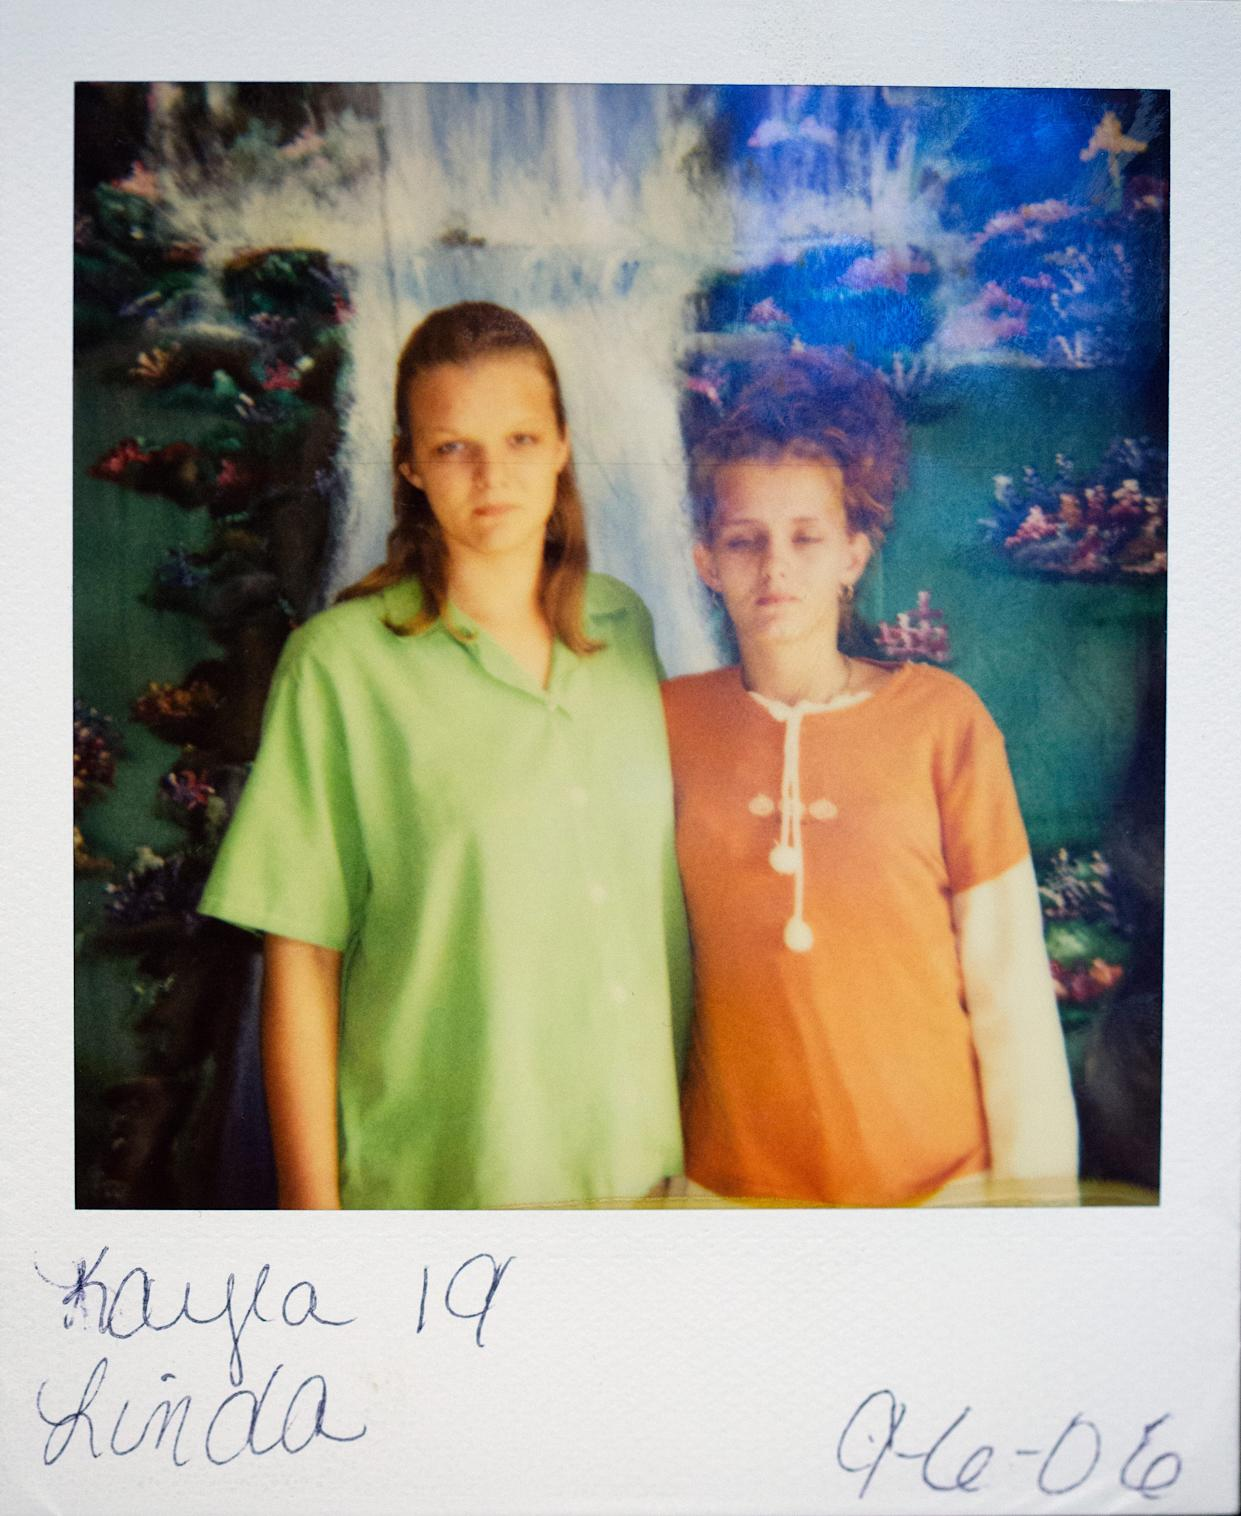 A polaroid taken September 6, 2006, of Kayla Artessia, 19, left, and Linda Mills, 21, taken when Kayla was serving a year in prison for attempting to smuggle in drugs to the jail. Both women allege they were victims of Phillip Malone, 64, when they were 15. He took nude photos of them and had sexual relations. Malone is a former Scioto County Sheriff's dispatcher and former probation officer with the city of Portsmouth. He was fired from both jobs. Malone denies all allegations. Rumors have long circulated in the small city of Portsmouth about men in power taking advantage of vulnerable women. Michael Mearan, prominent Portsmouth attorney, is part of an 80-page affidavit created by the Drug Enforcement Administration in 2015 to obtain permission to wiretap several phone, including Mearan's. It alleges he is part of a sex trafficking network.